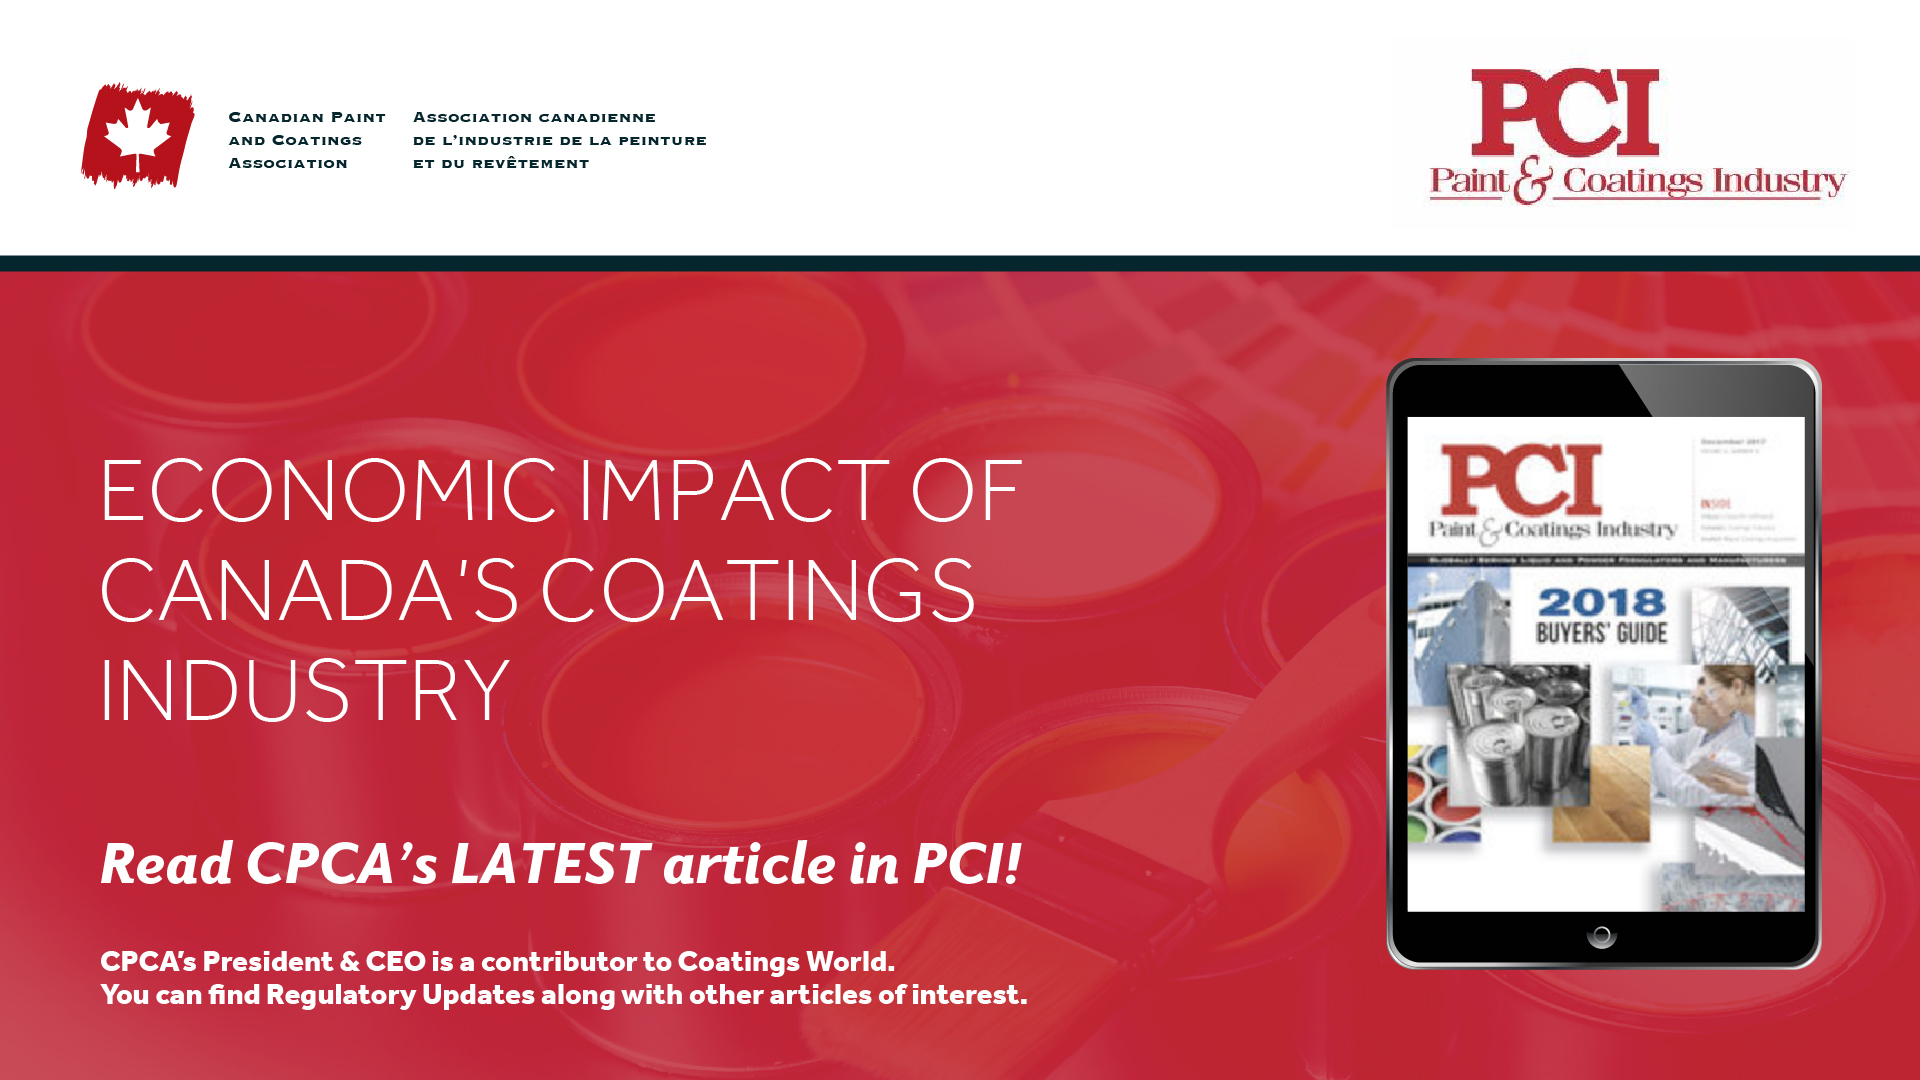 Economic Impact of the Paint and Coatings Industry in Canada